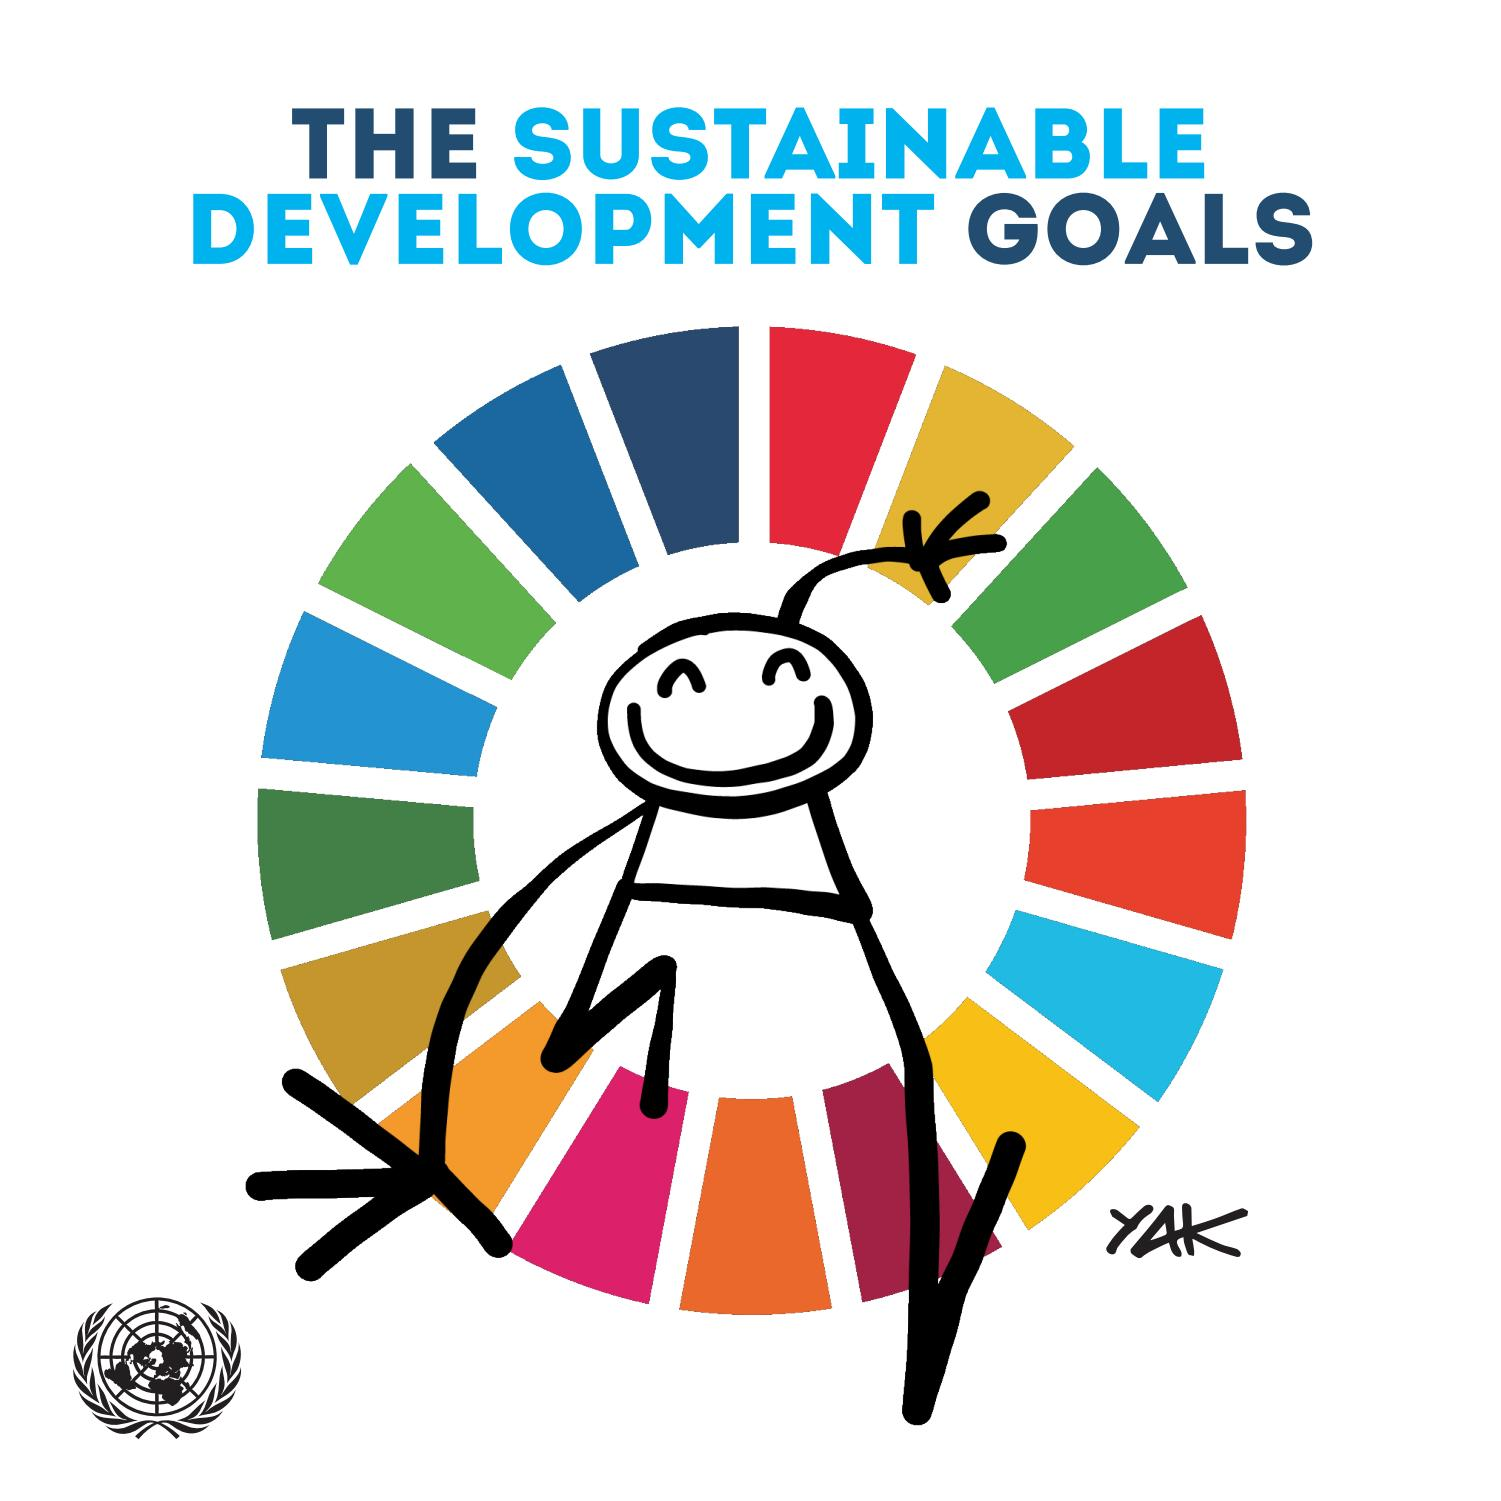 A marker-drawn smiling stick man clambering through a rainbow wheel representing the 27 UN Sustainable Development Goals